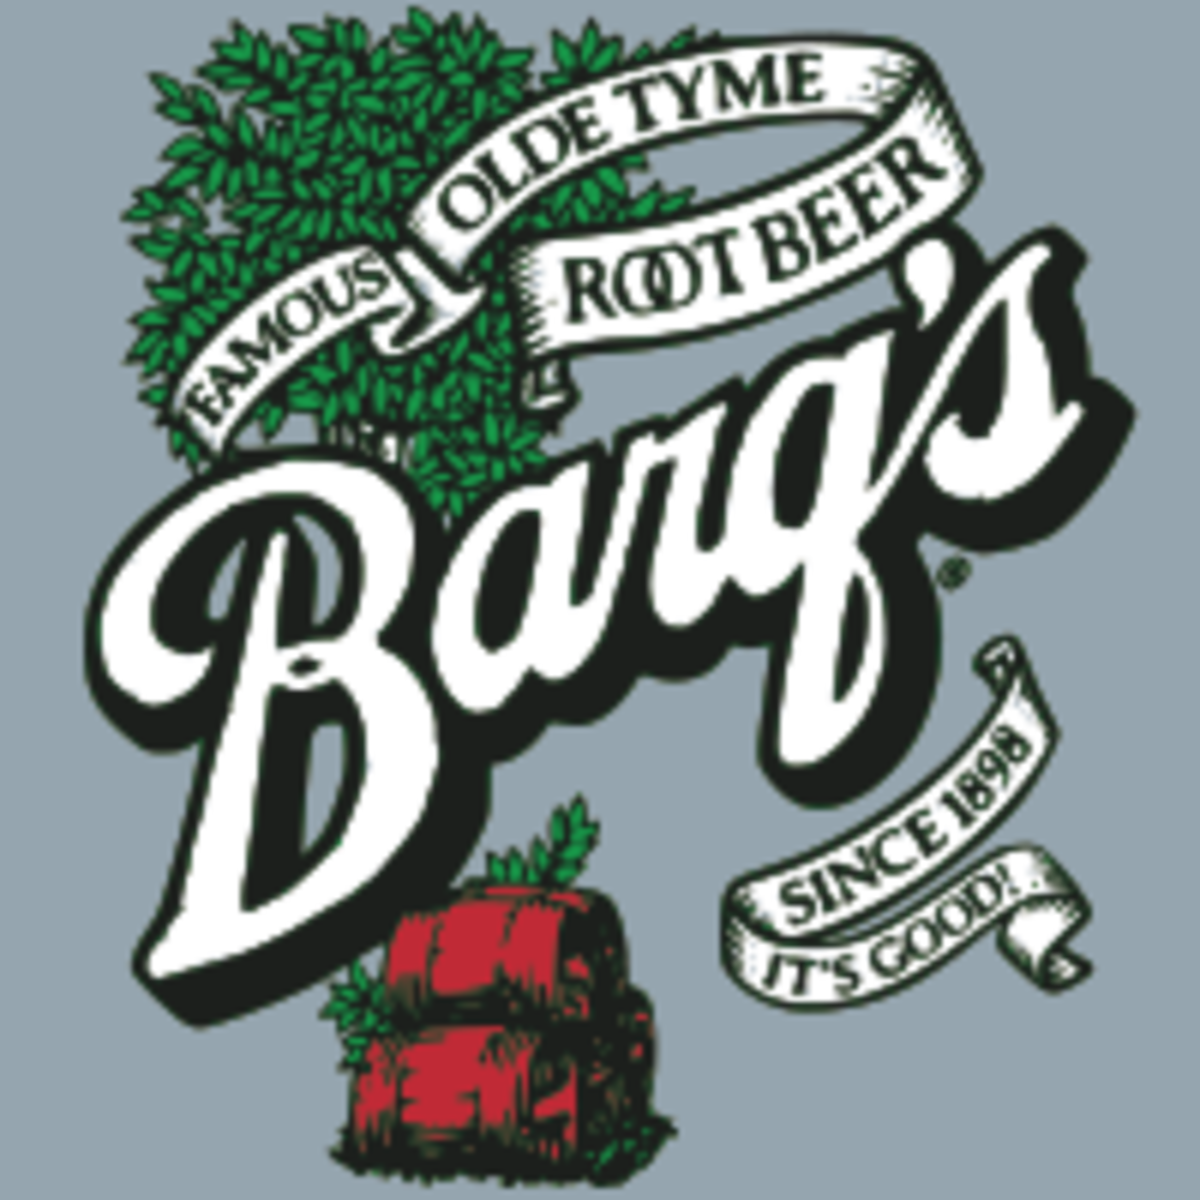 Barq's Famous Olde Tyme Root Beer